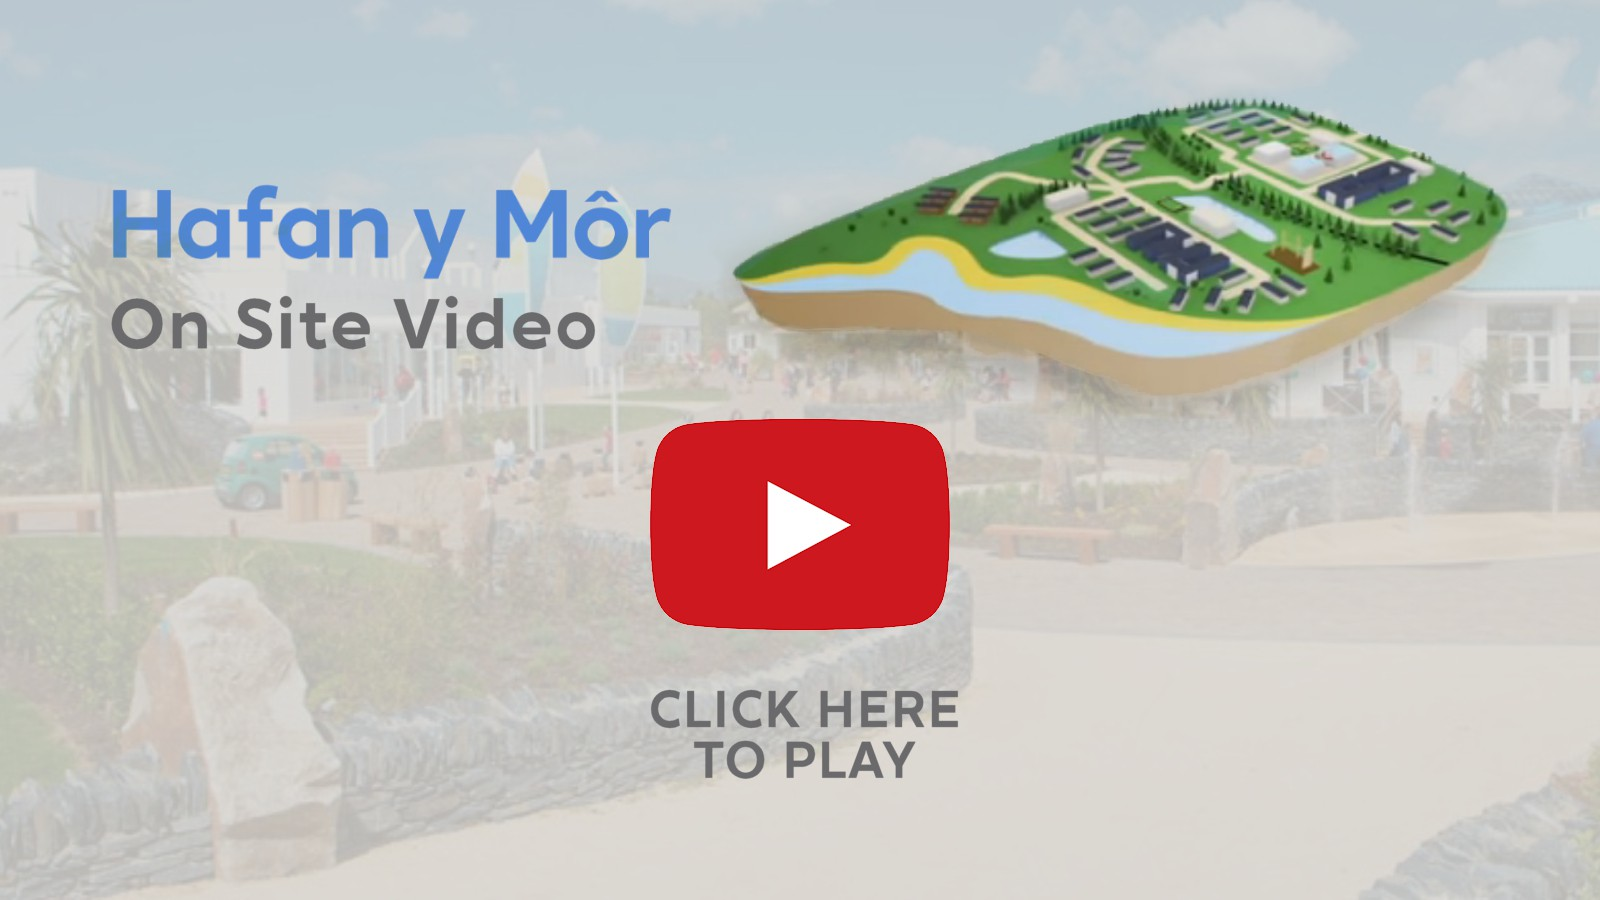 Hafan y Môr Direct Holidays Video